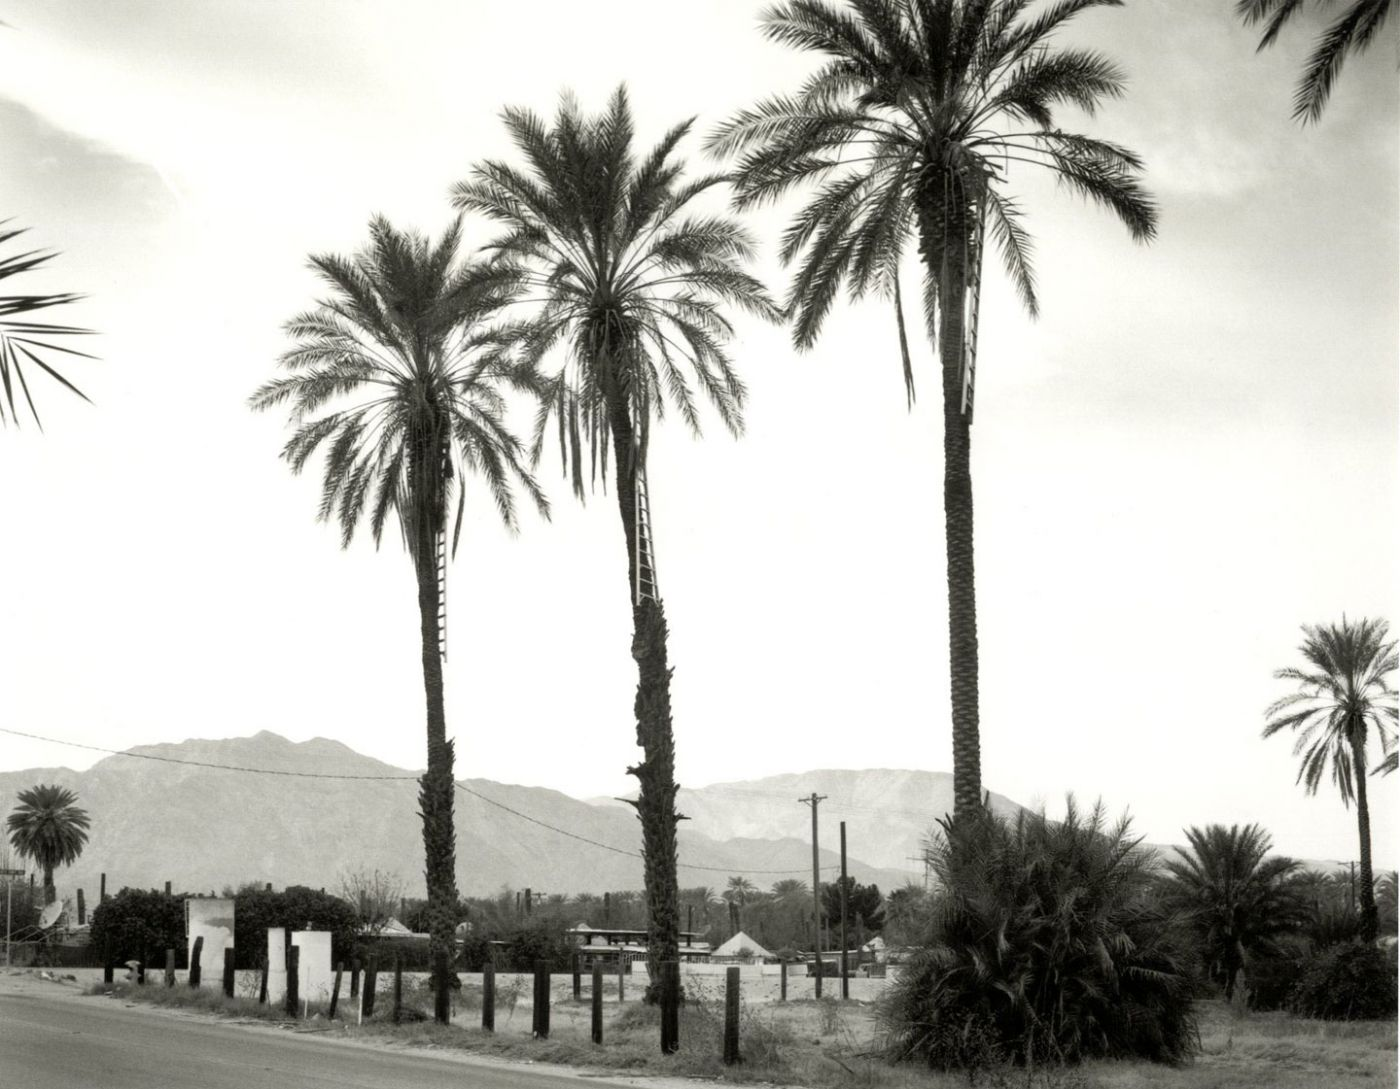 Mark Ruwedel: One Thousand Two Hundred Twelve Palms (1212 Palms) [SIGNED]